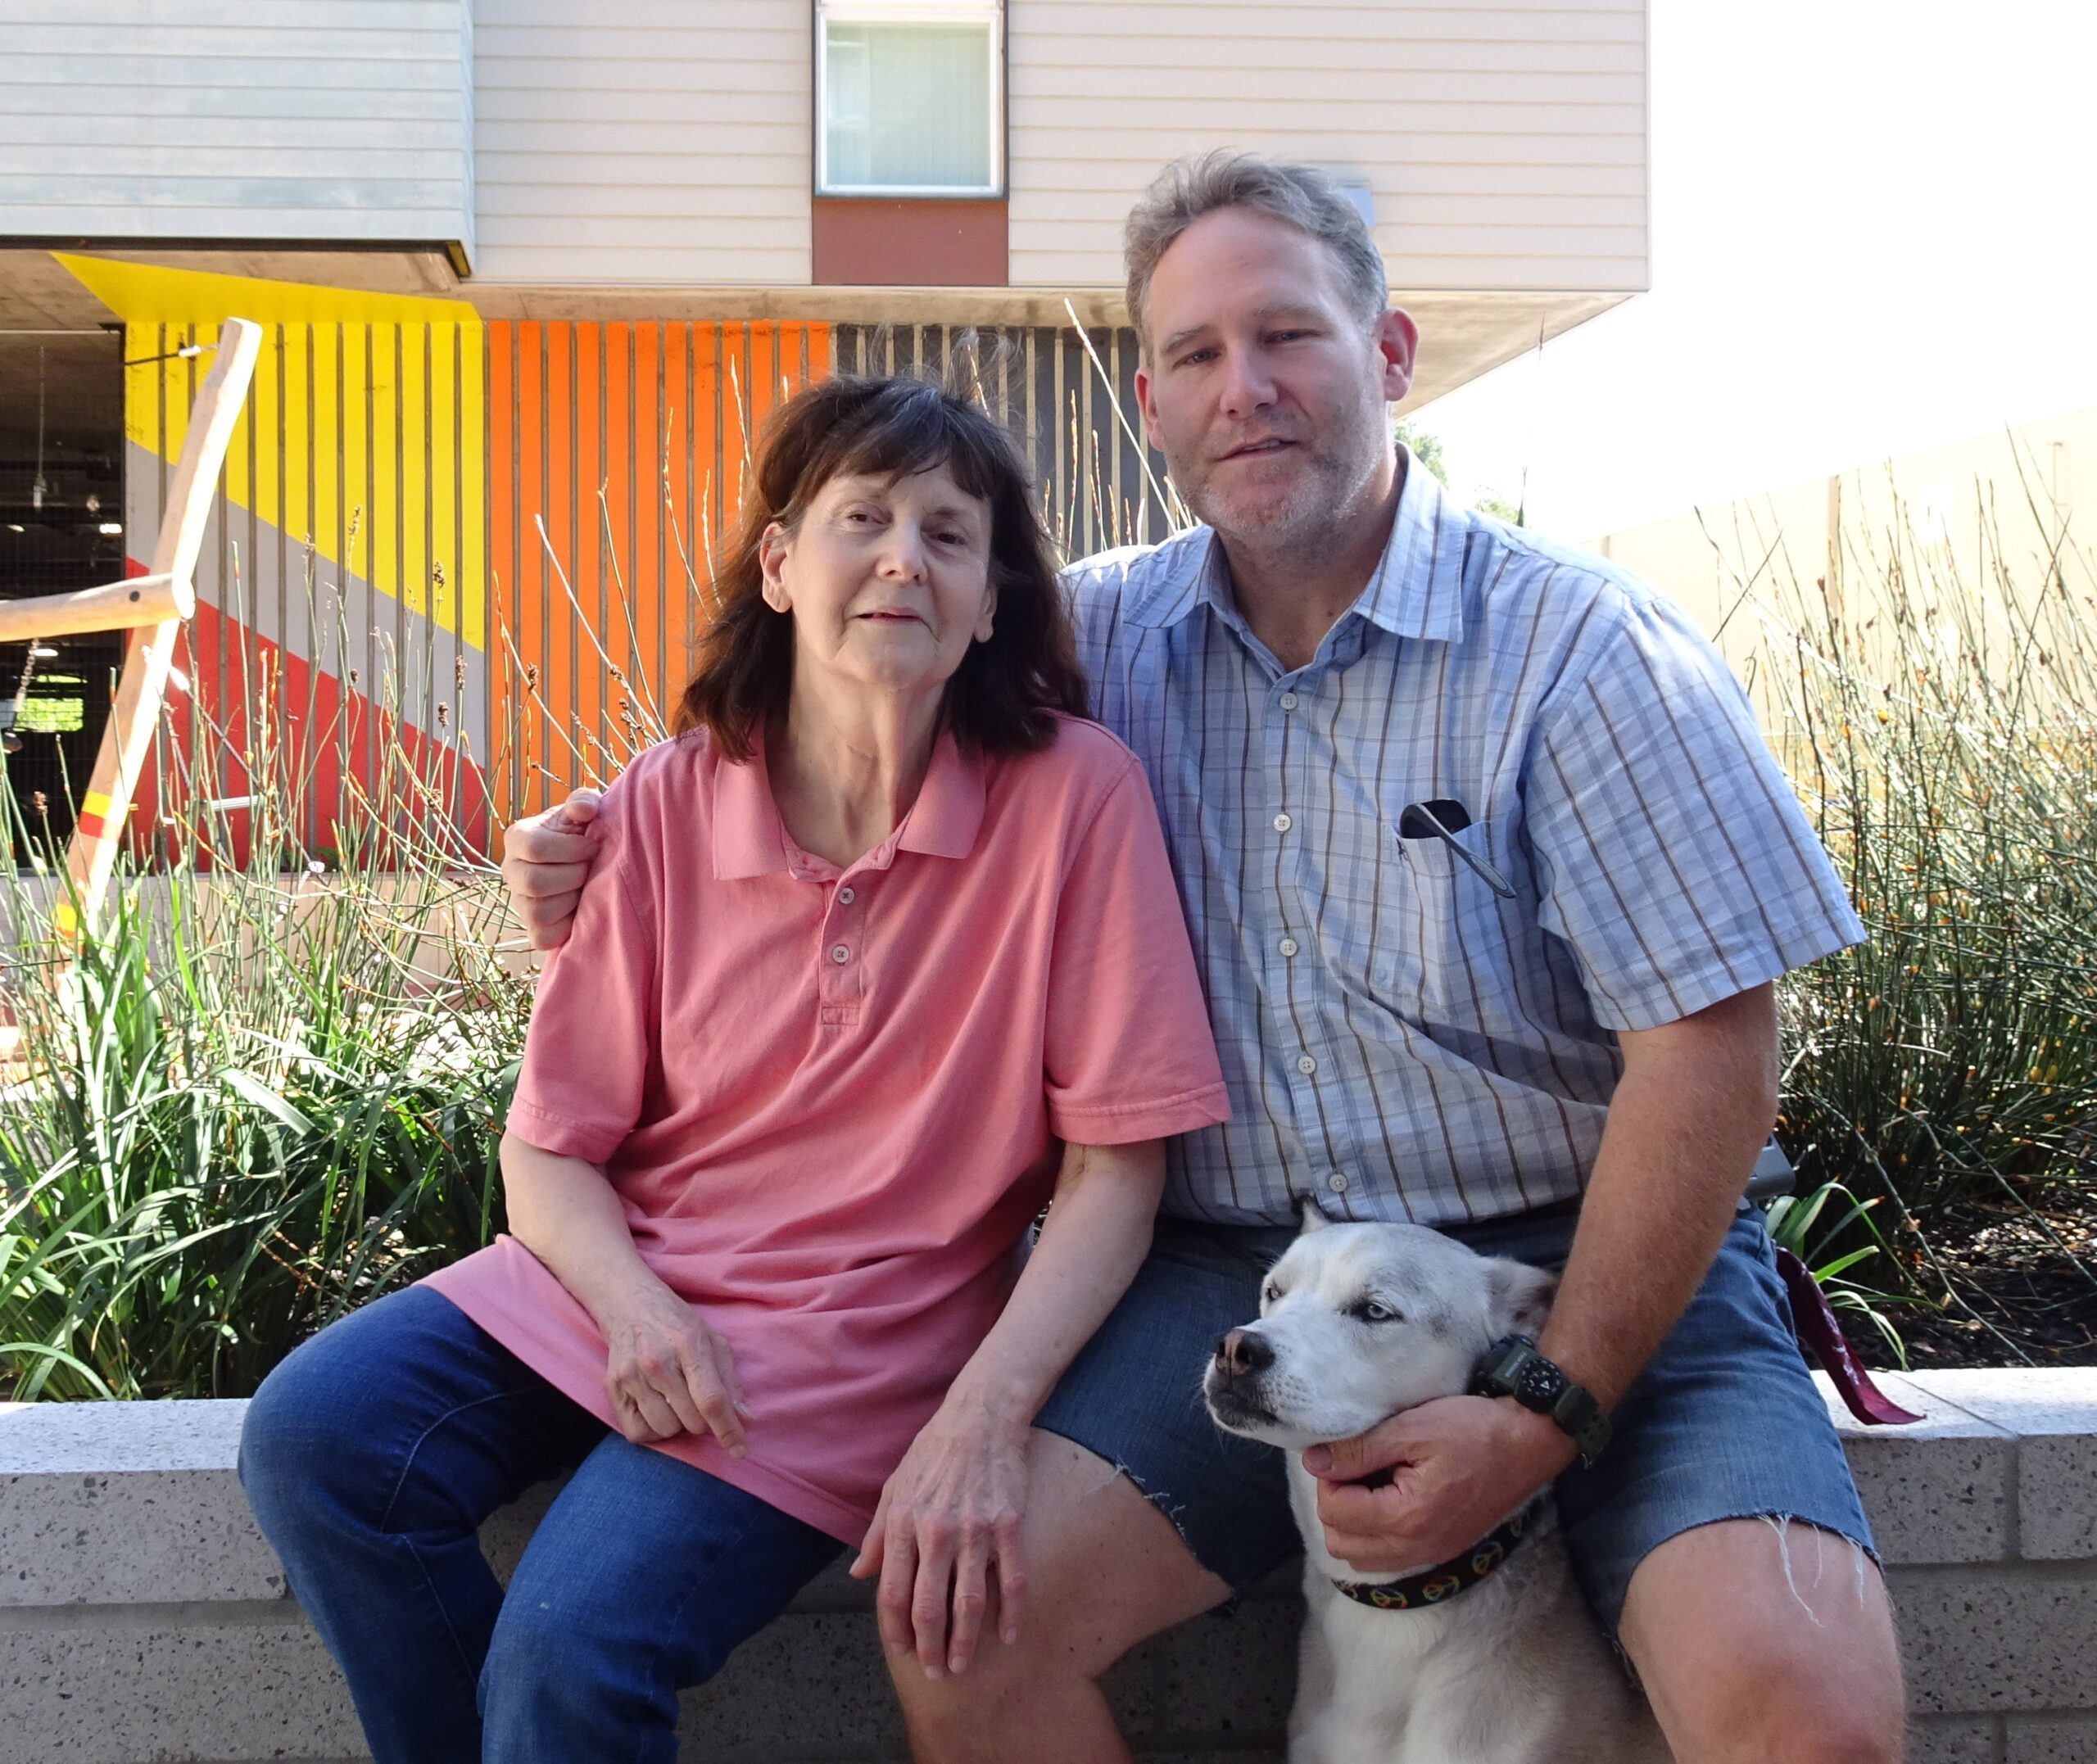 Phillip and Marjorie - with their dog Sasha - at home at Edwina Benner Plaza in Sunnyvale